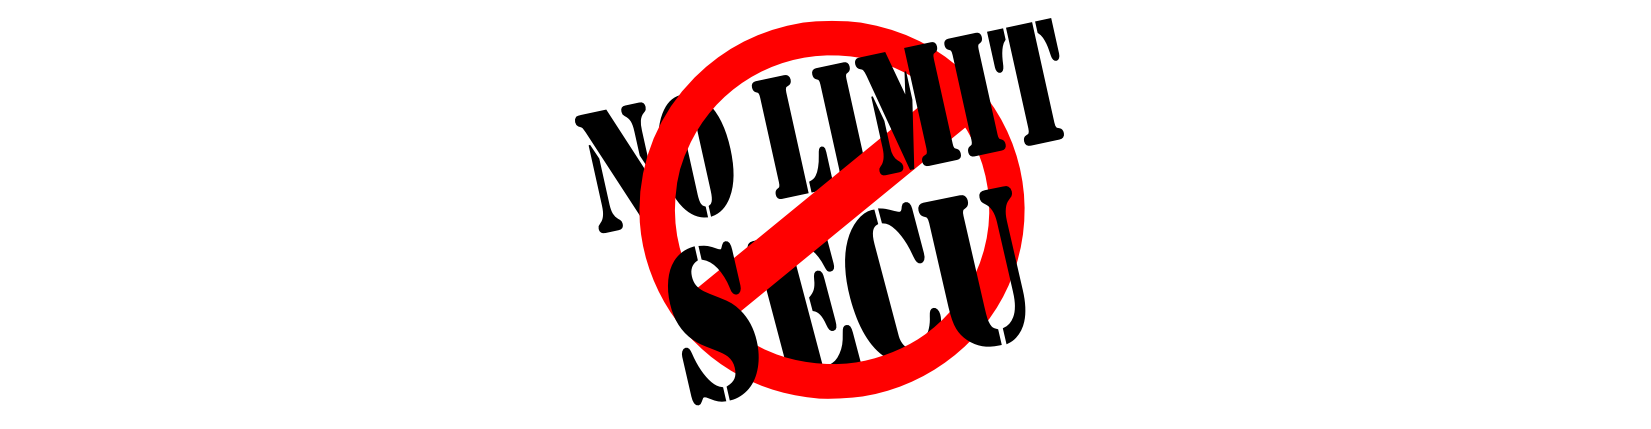 logo de No Limit Secu